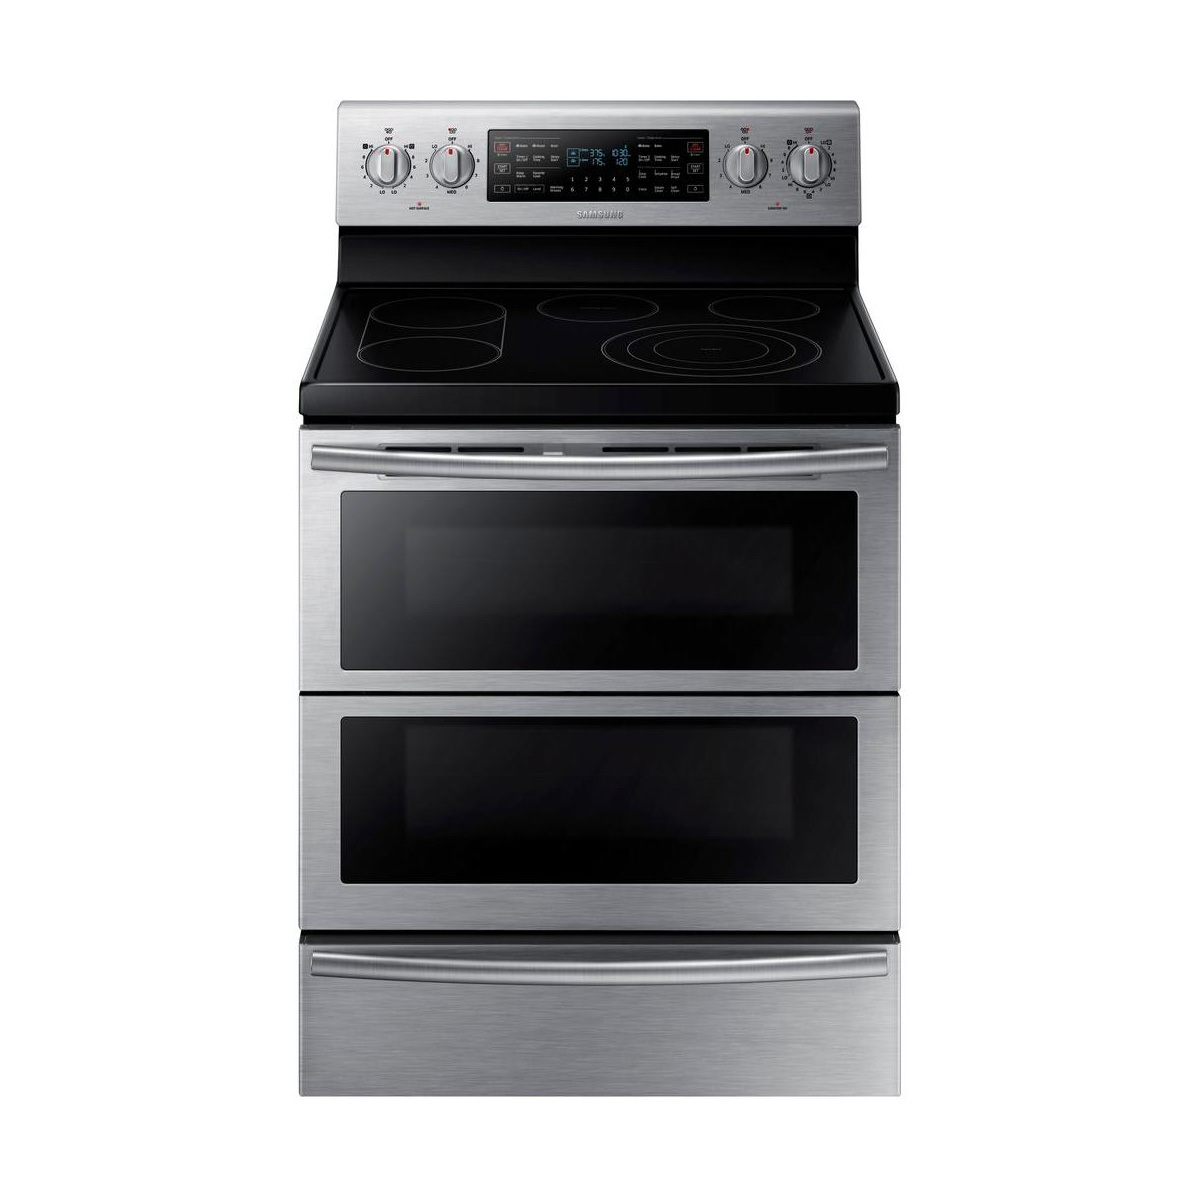 Double oven stove with induction cooktop aeg competence Samsung induction range